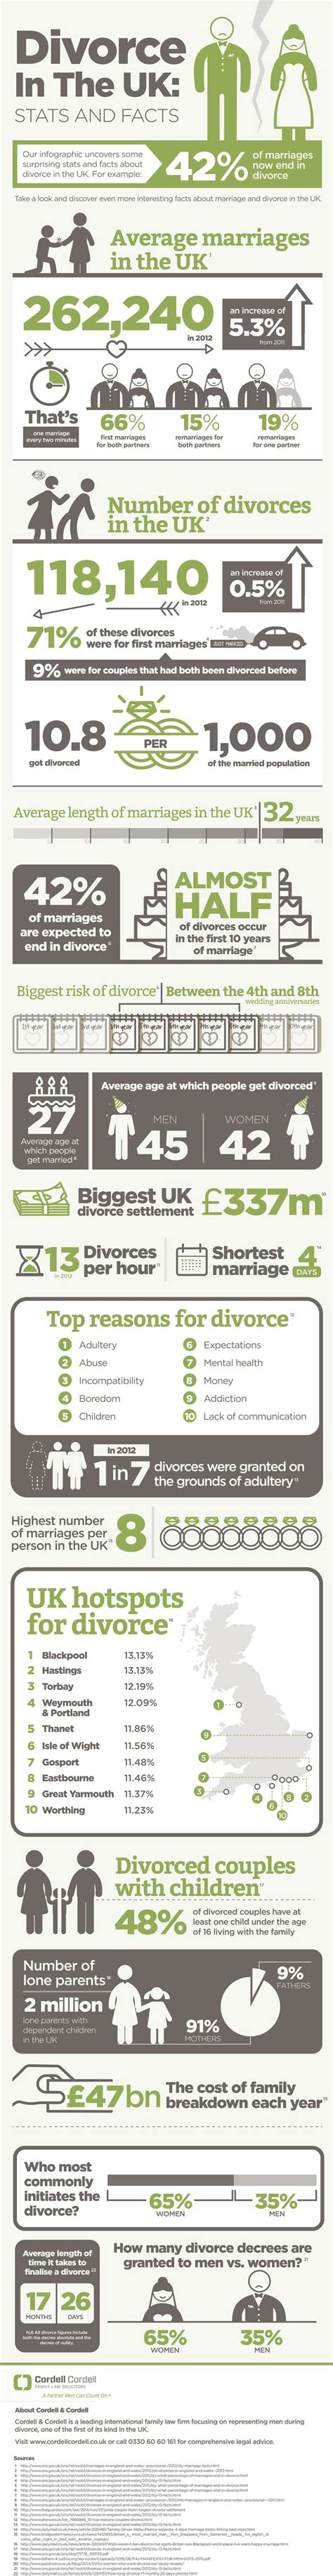 texas divorce facts texas divorce source divorce in the uk stats and facts